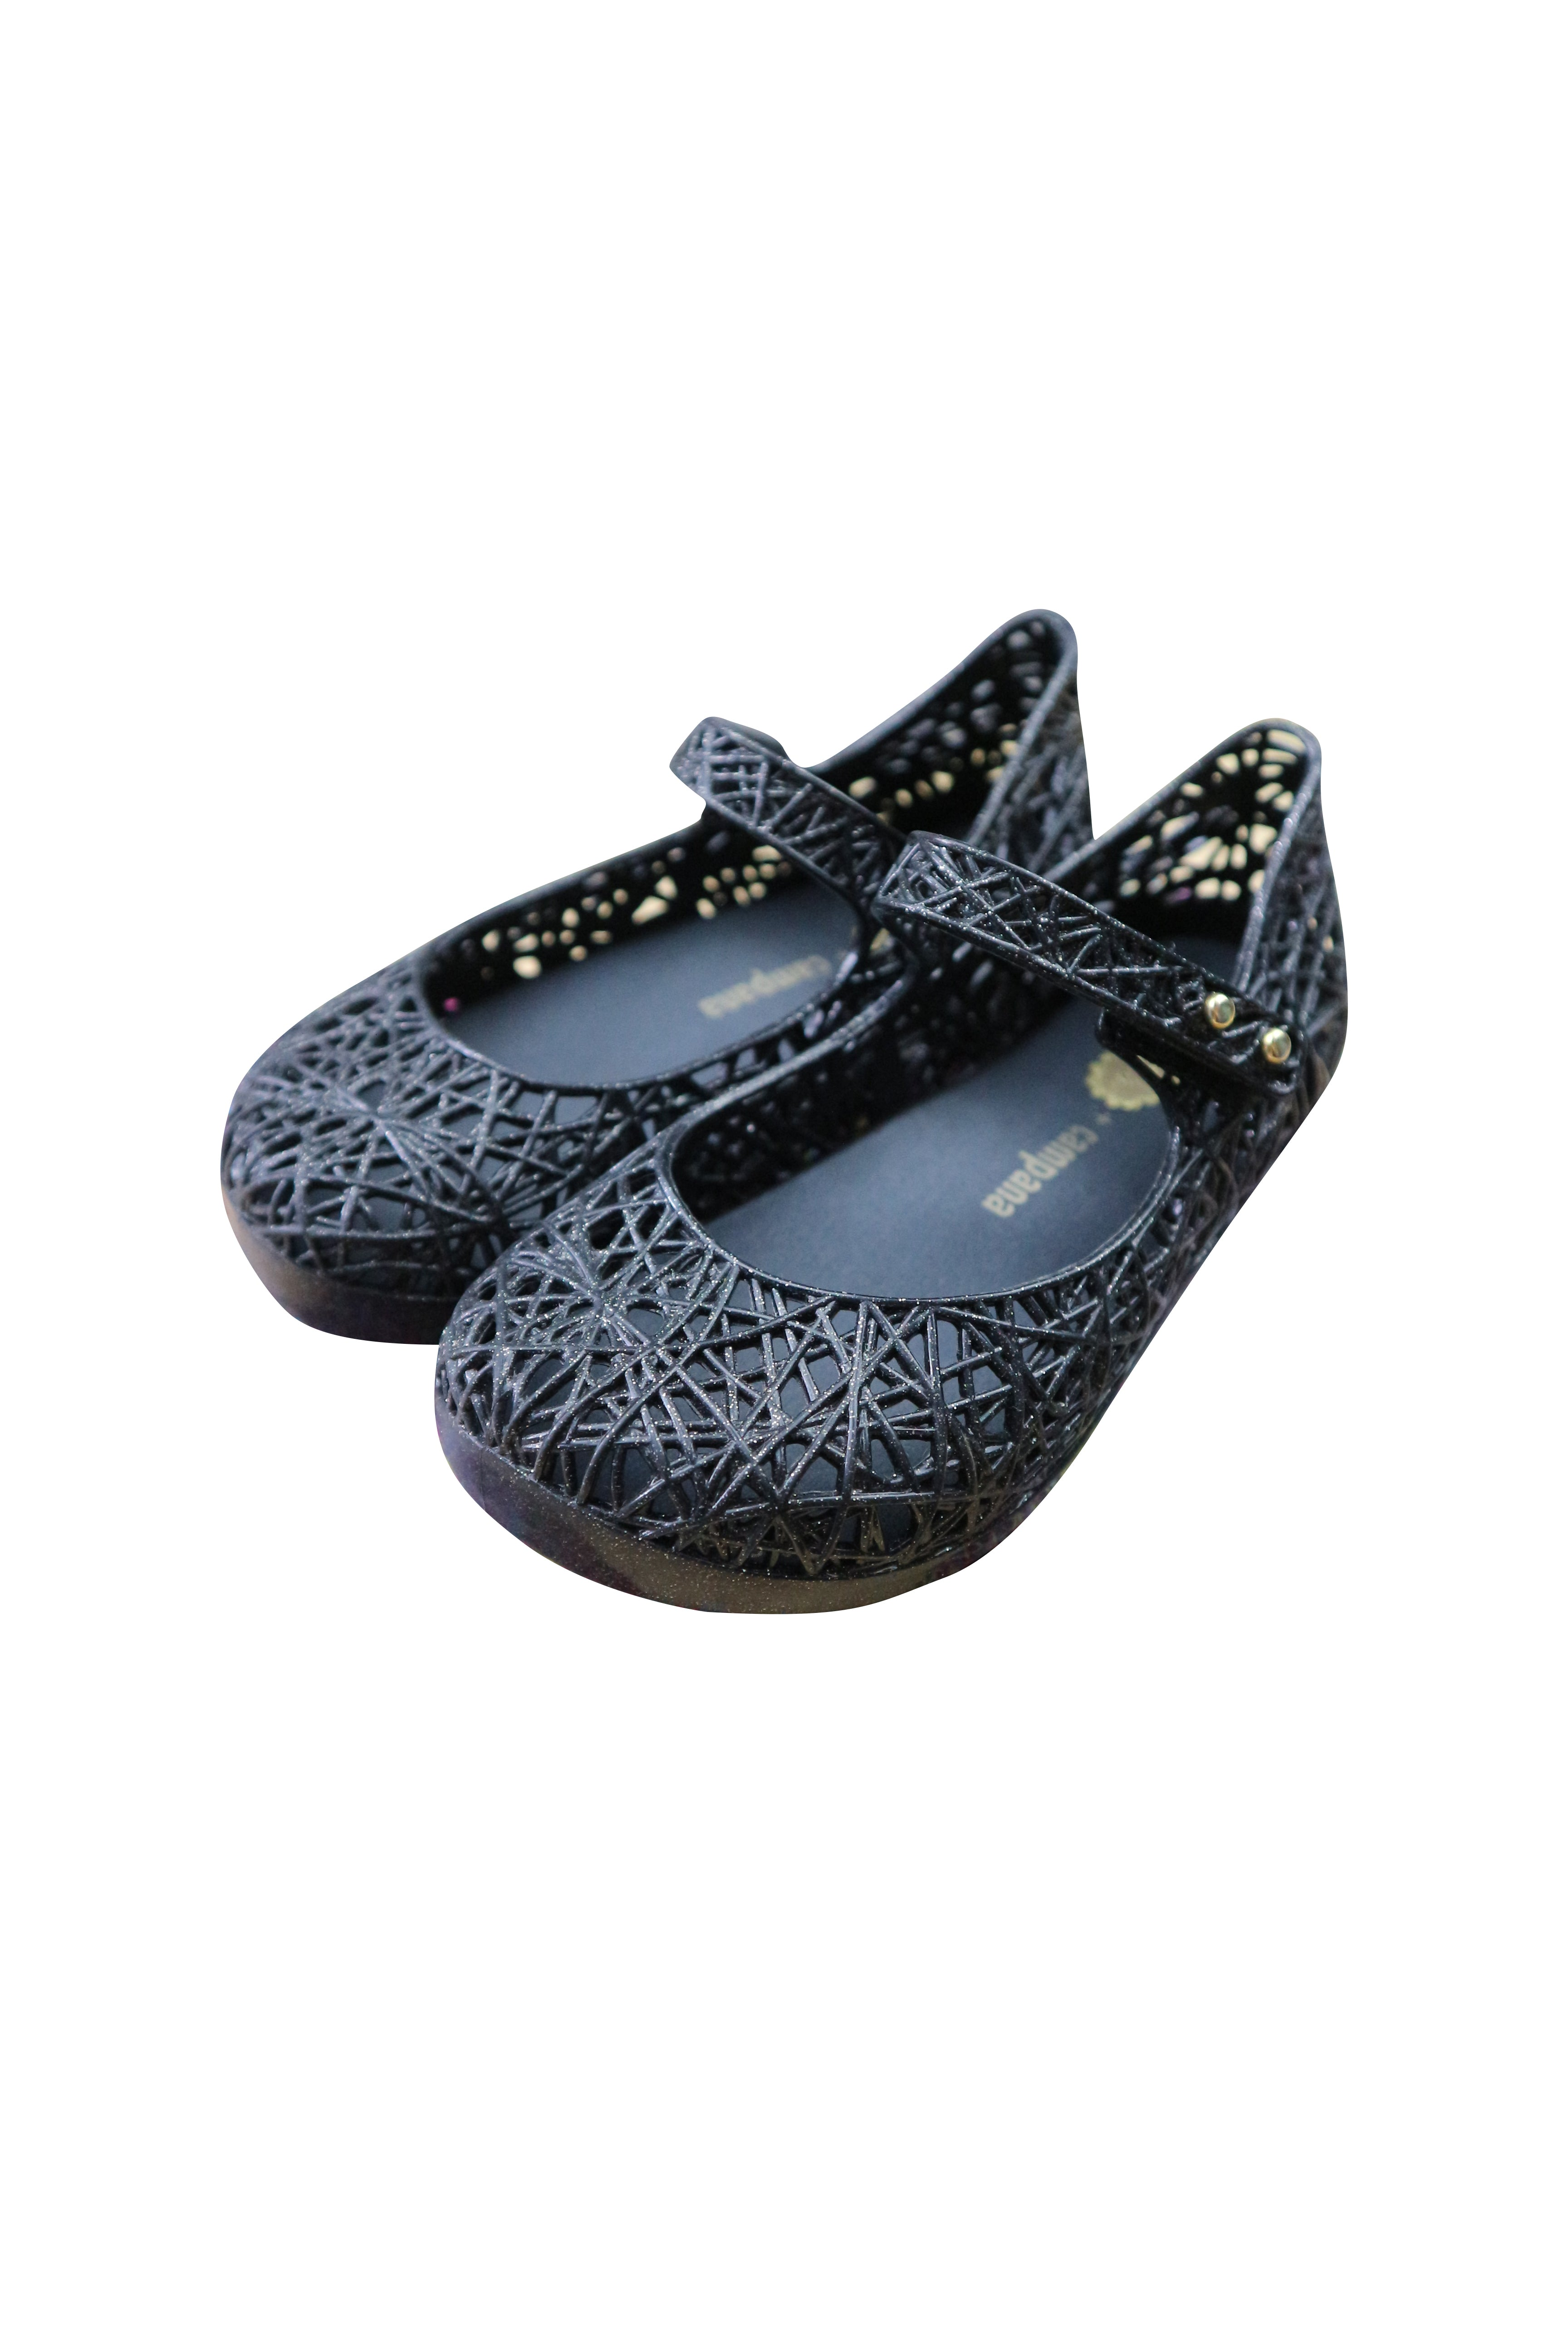 Mini Melissa Shoes size 9 - Use-Ta! Preloved Children's Wear Online